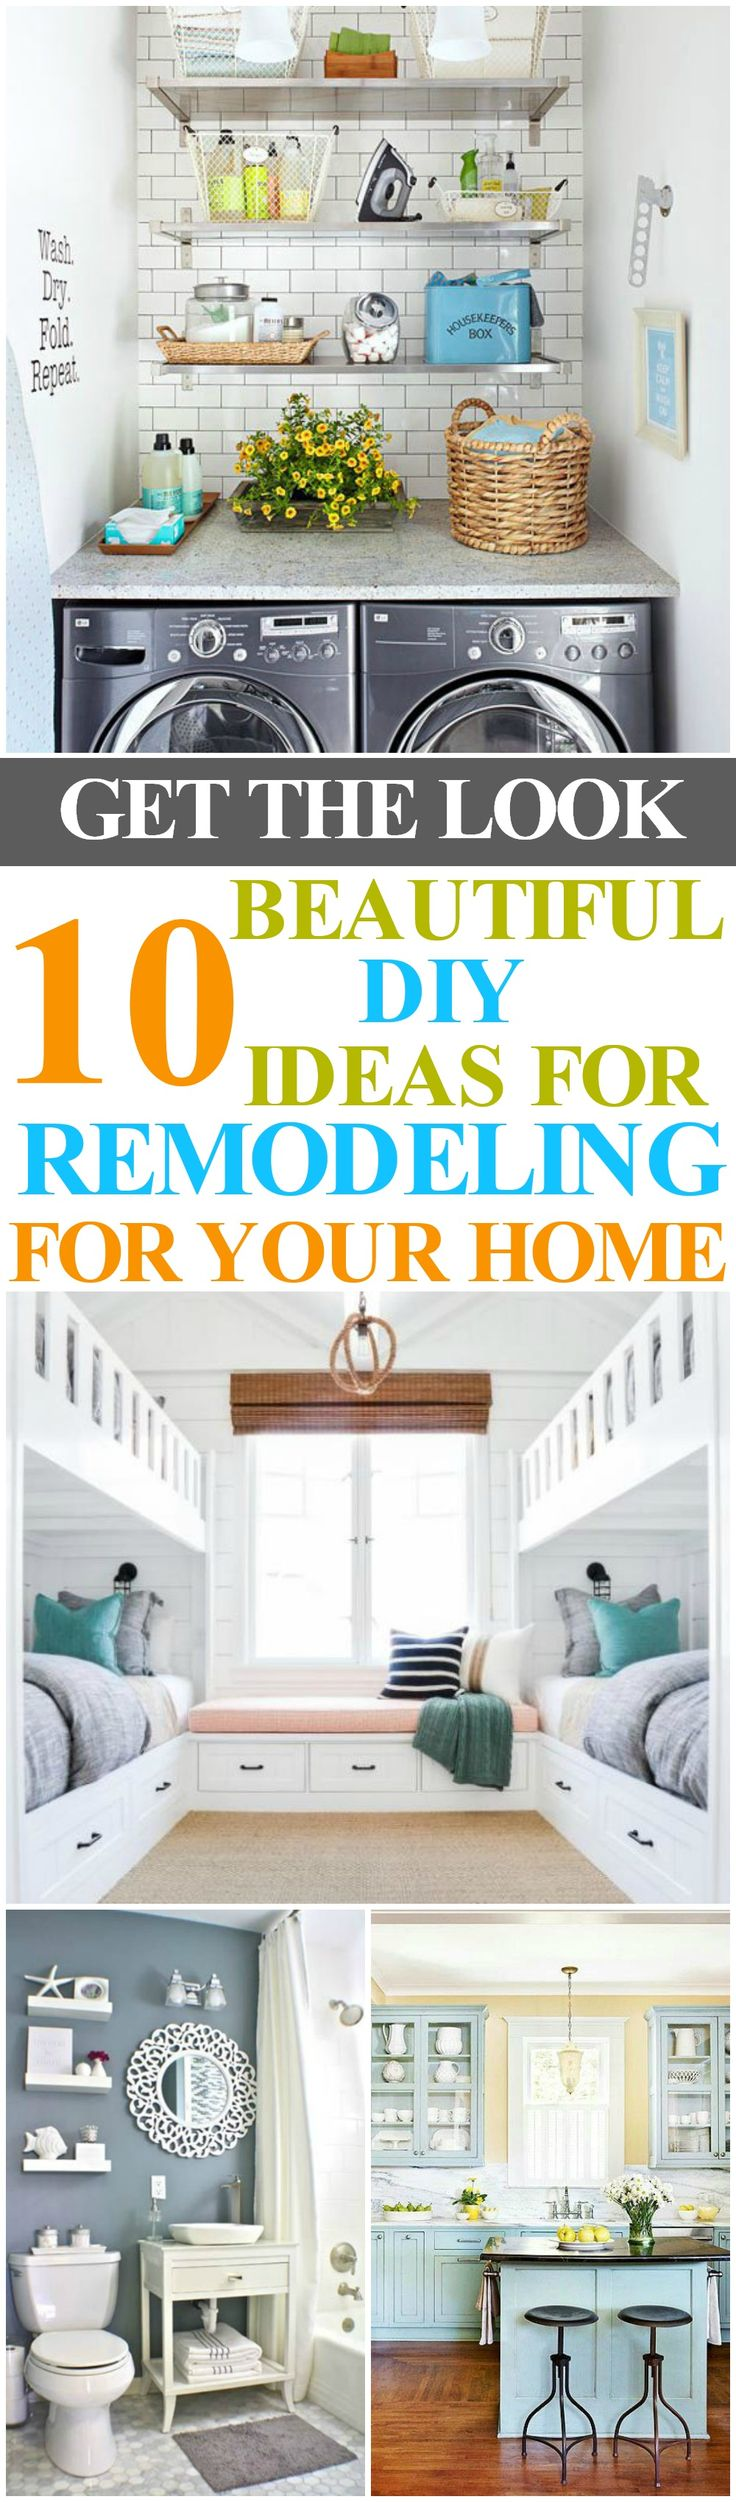 Remodeling Ideas for your home. #remodeling #remodelideas #decor #décorideas